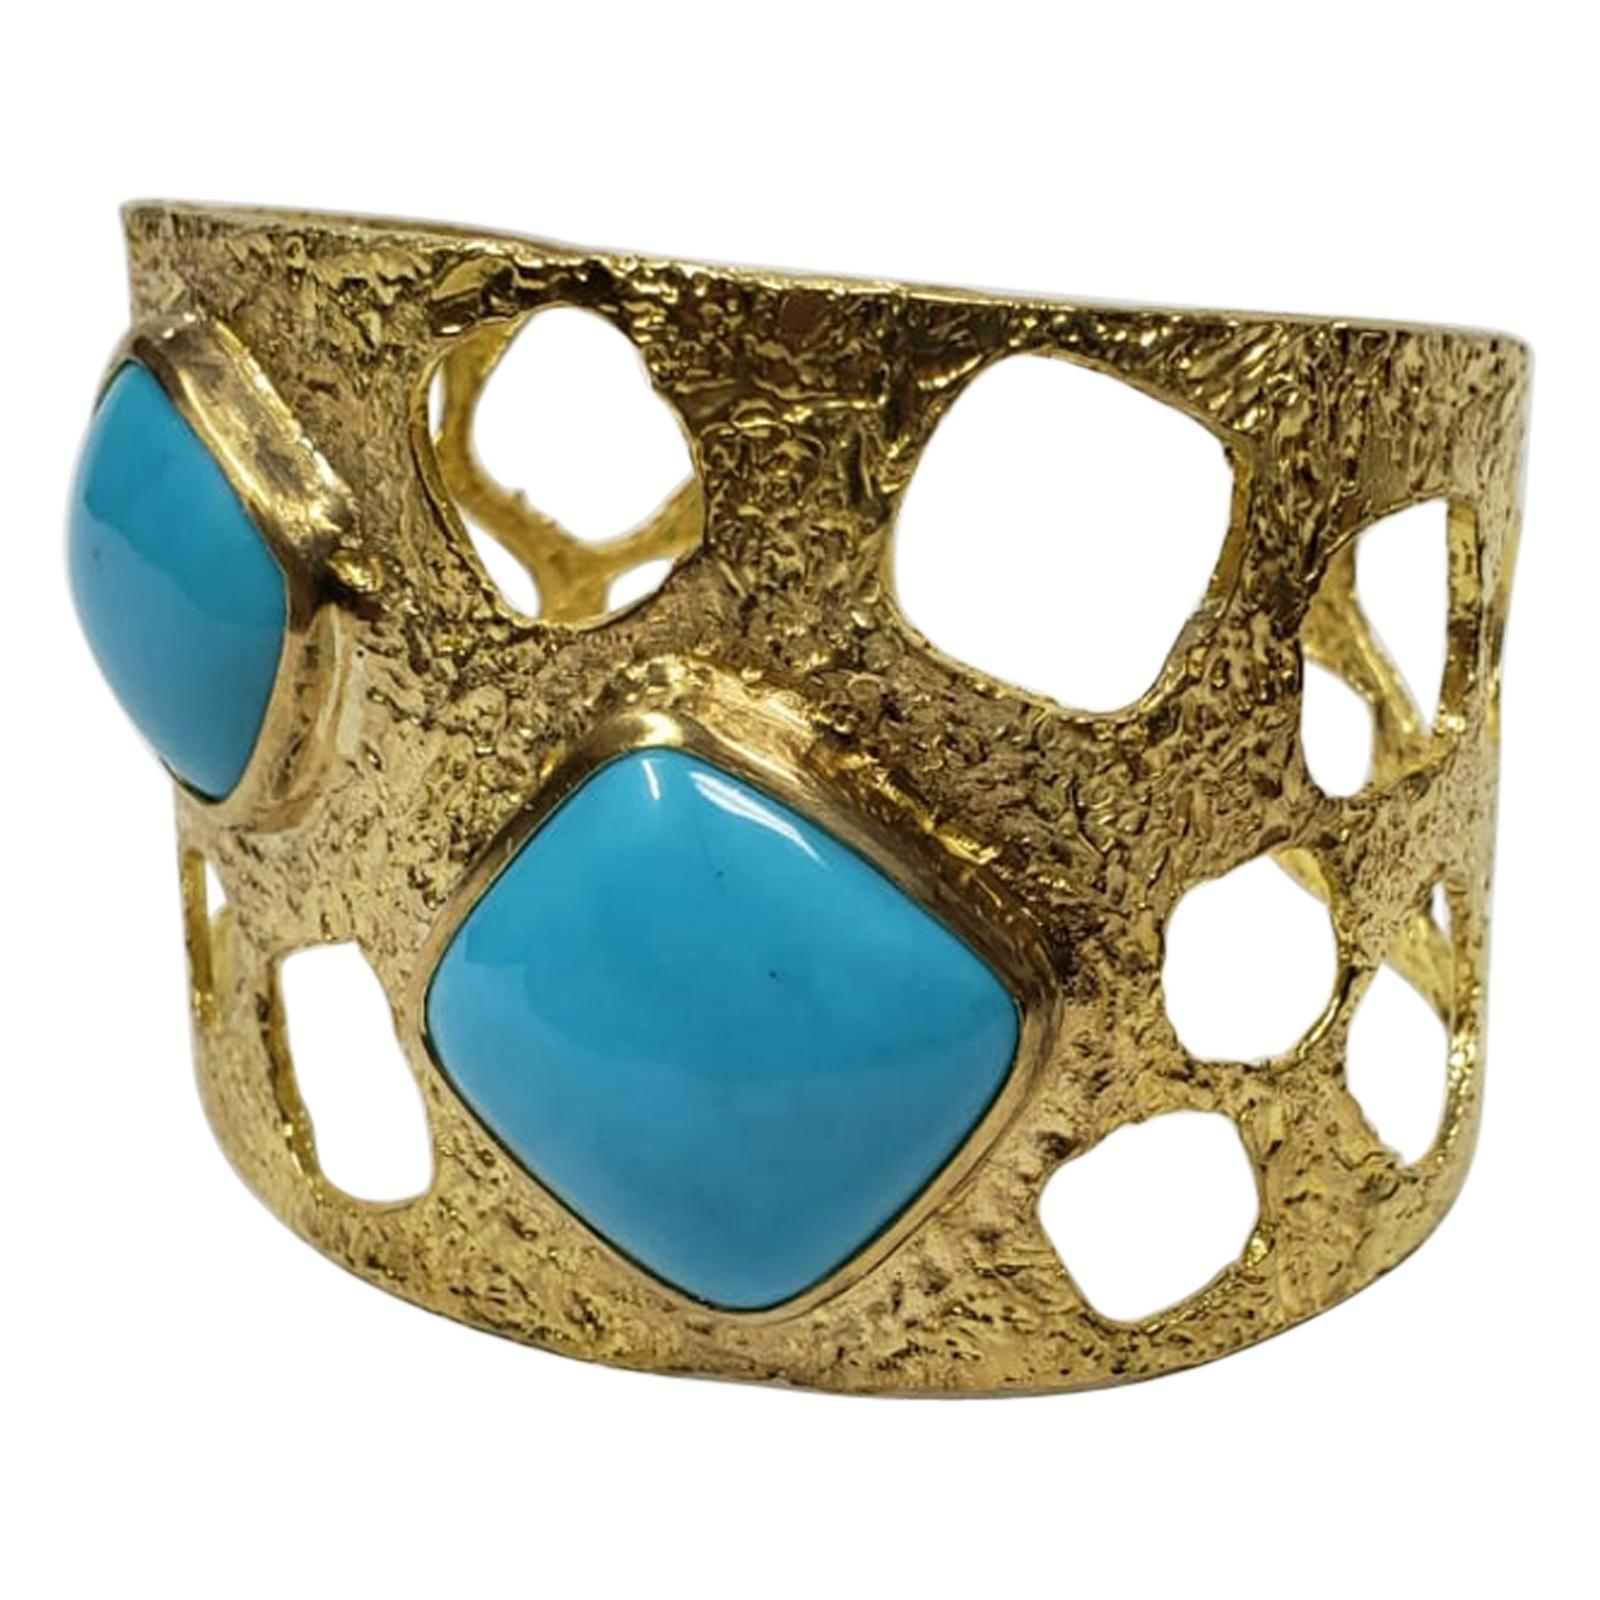 22k Gold Handmade Cuff with Turquoise